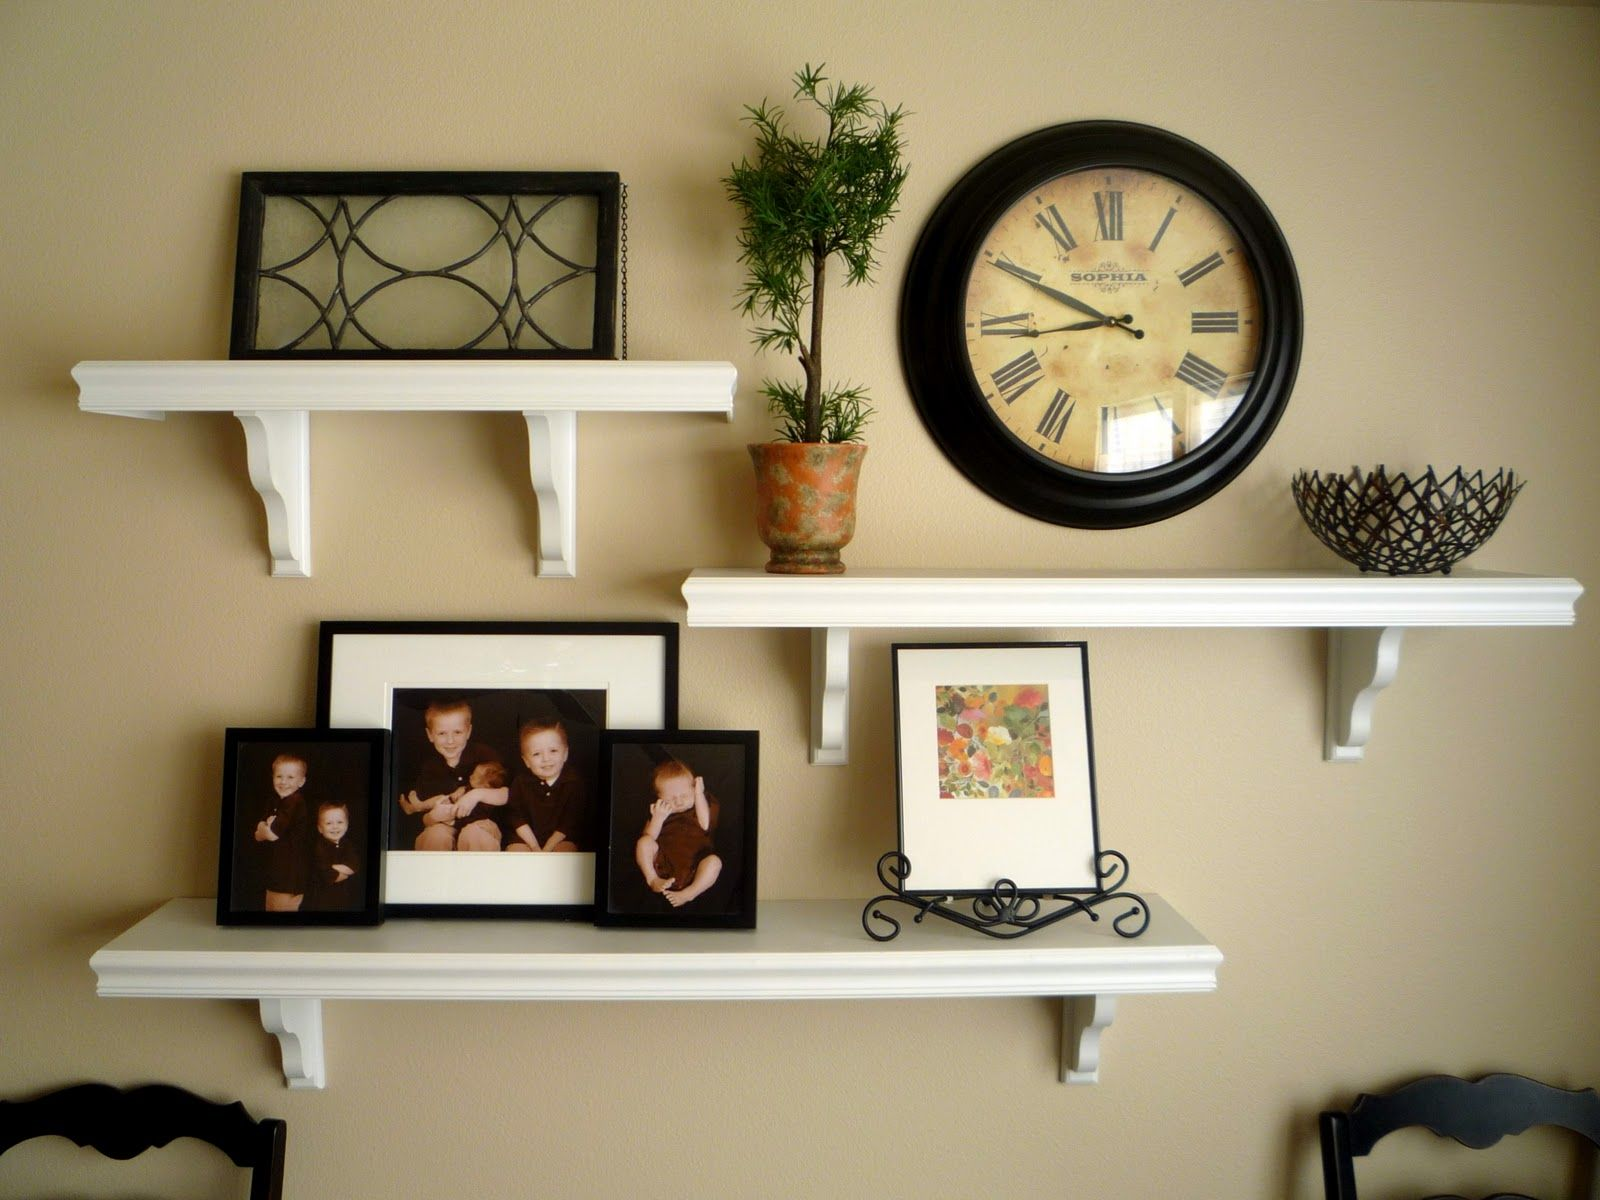 Picture and shelves on wall together it all started Shelves design ideas